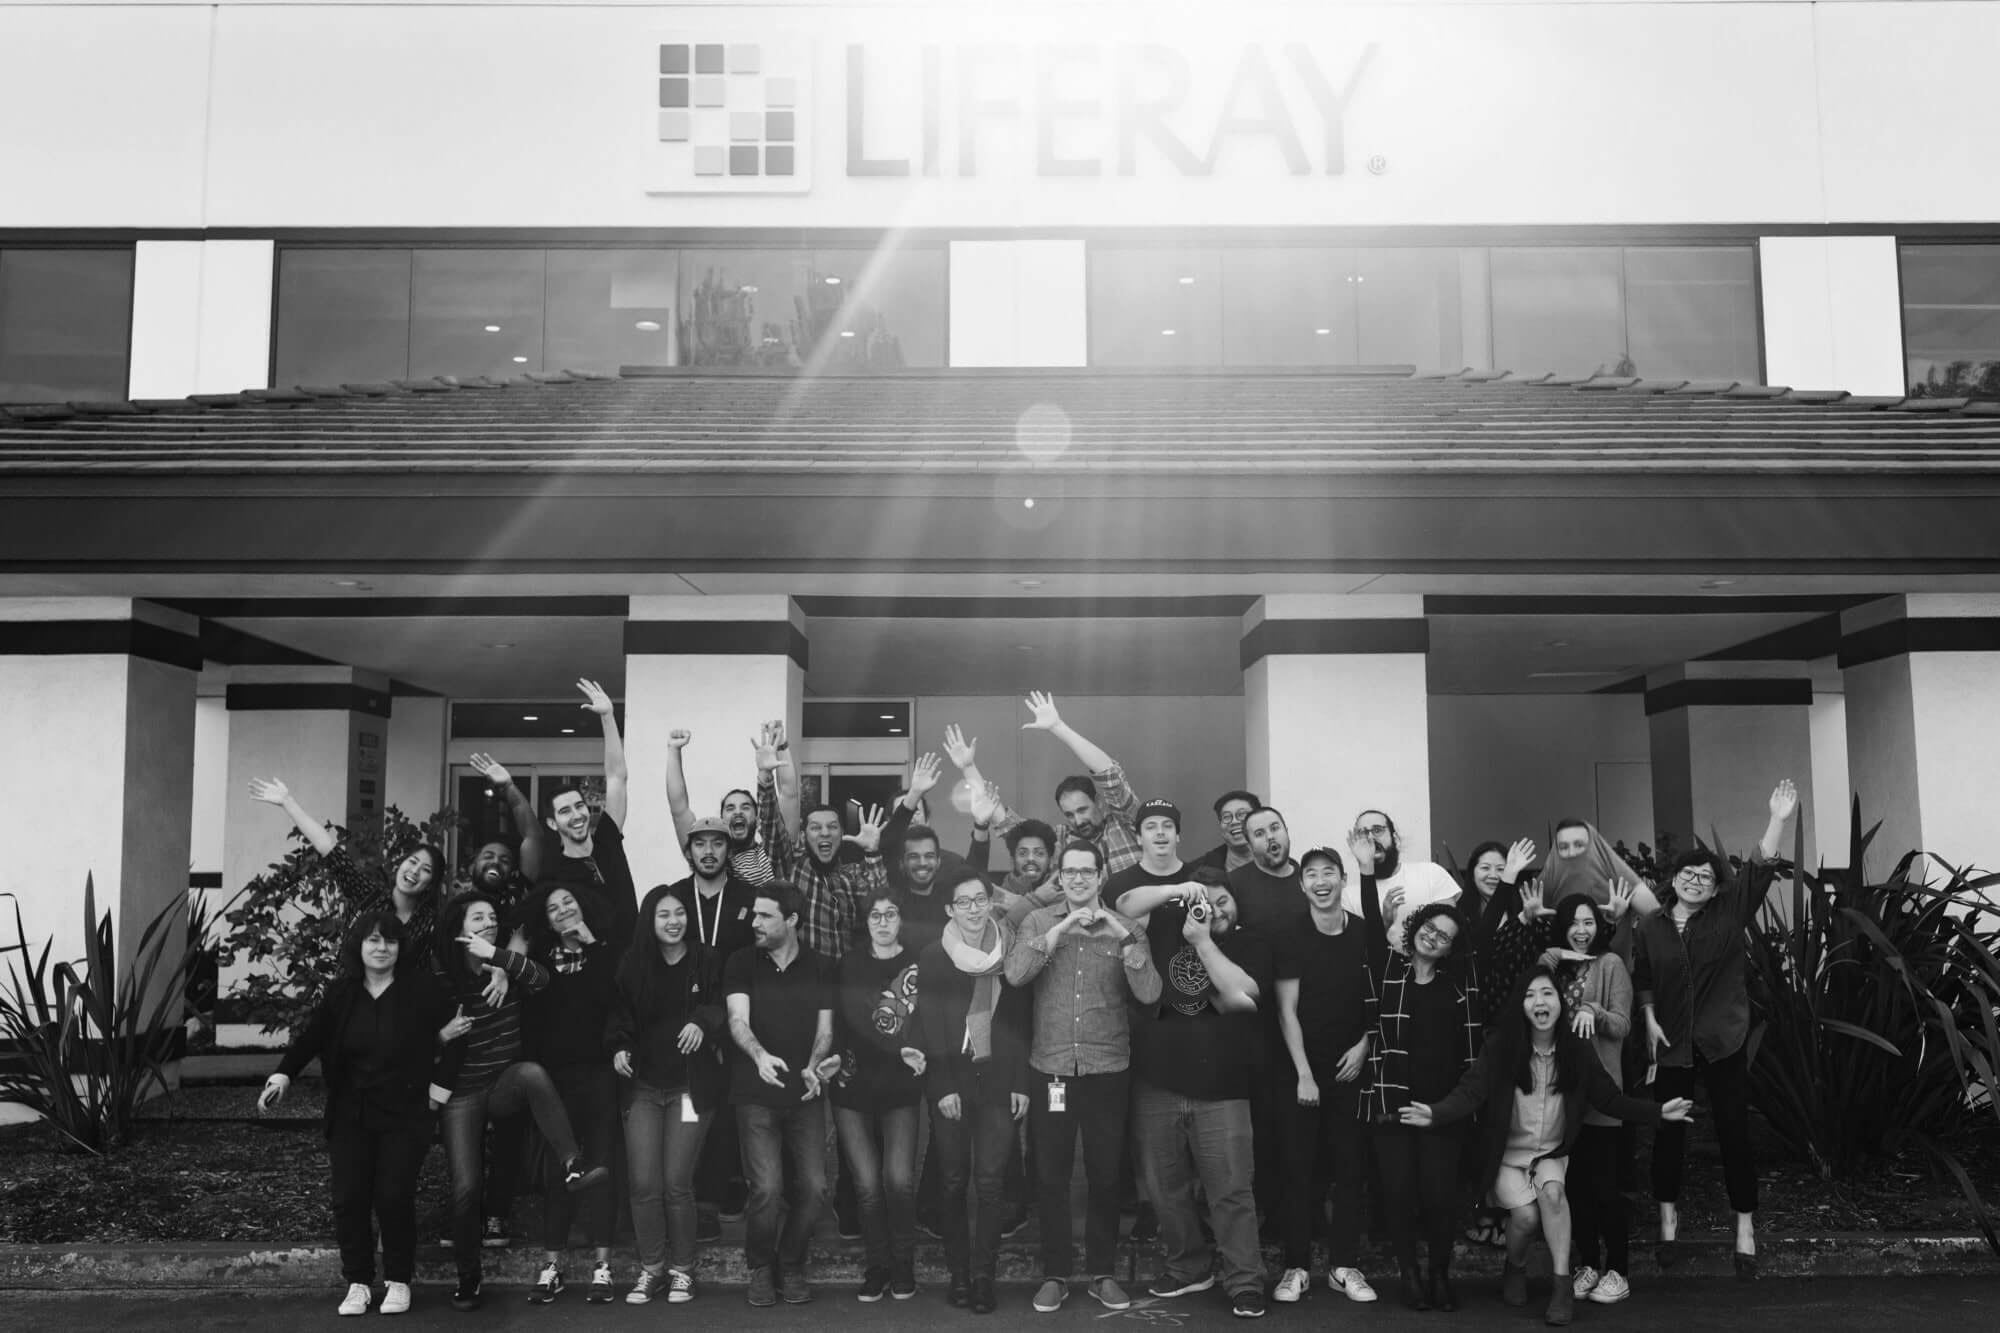 The Liferay Design Team